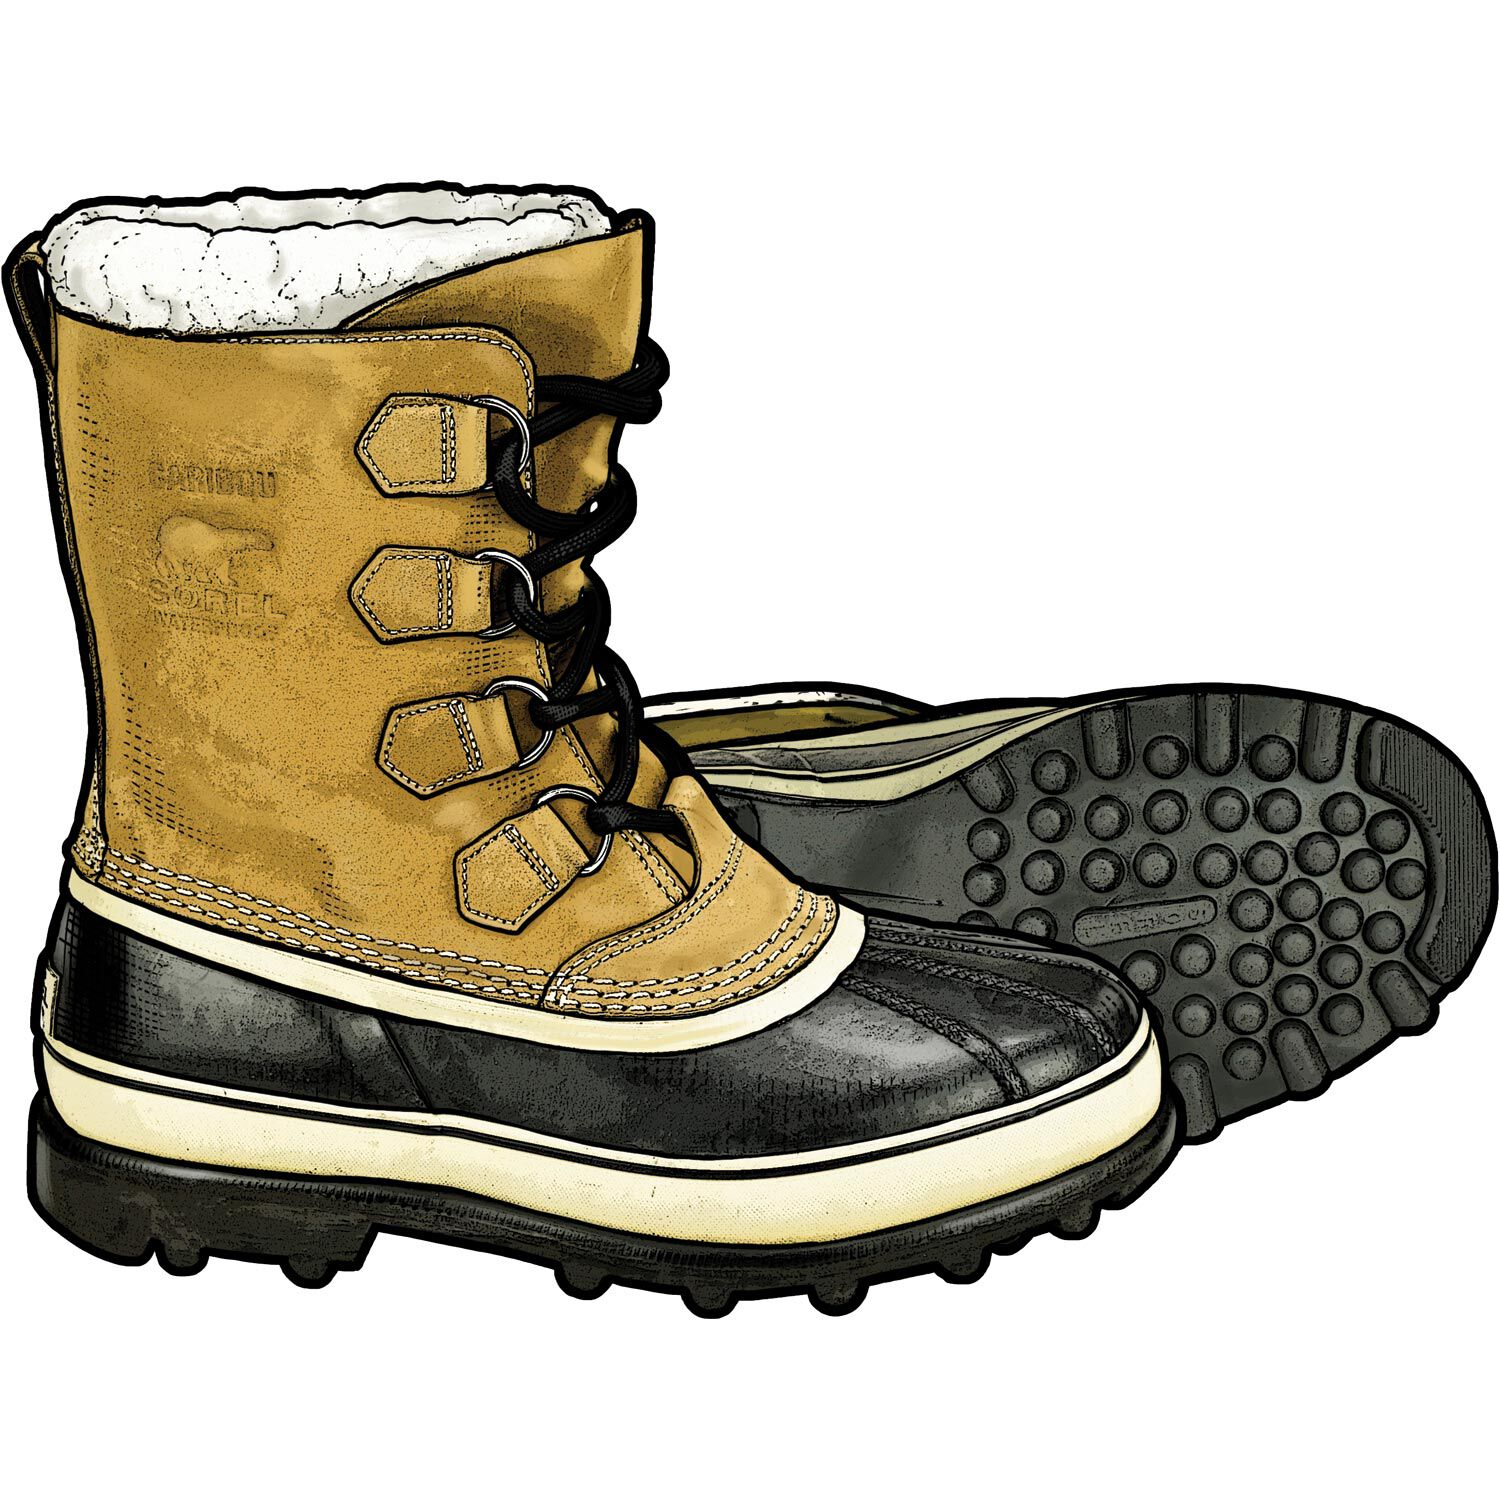 Sorel Winter Boots   Duluth Trading Company